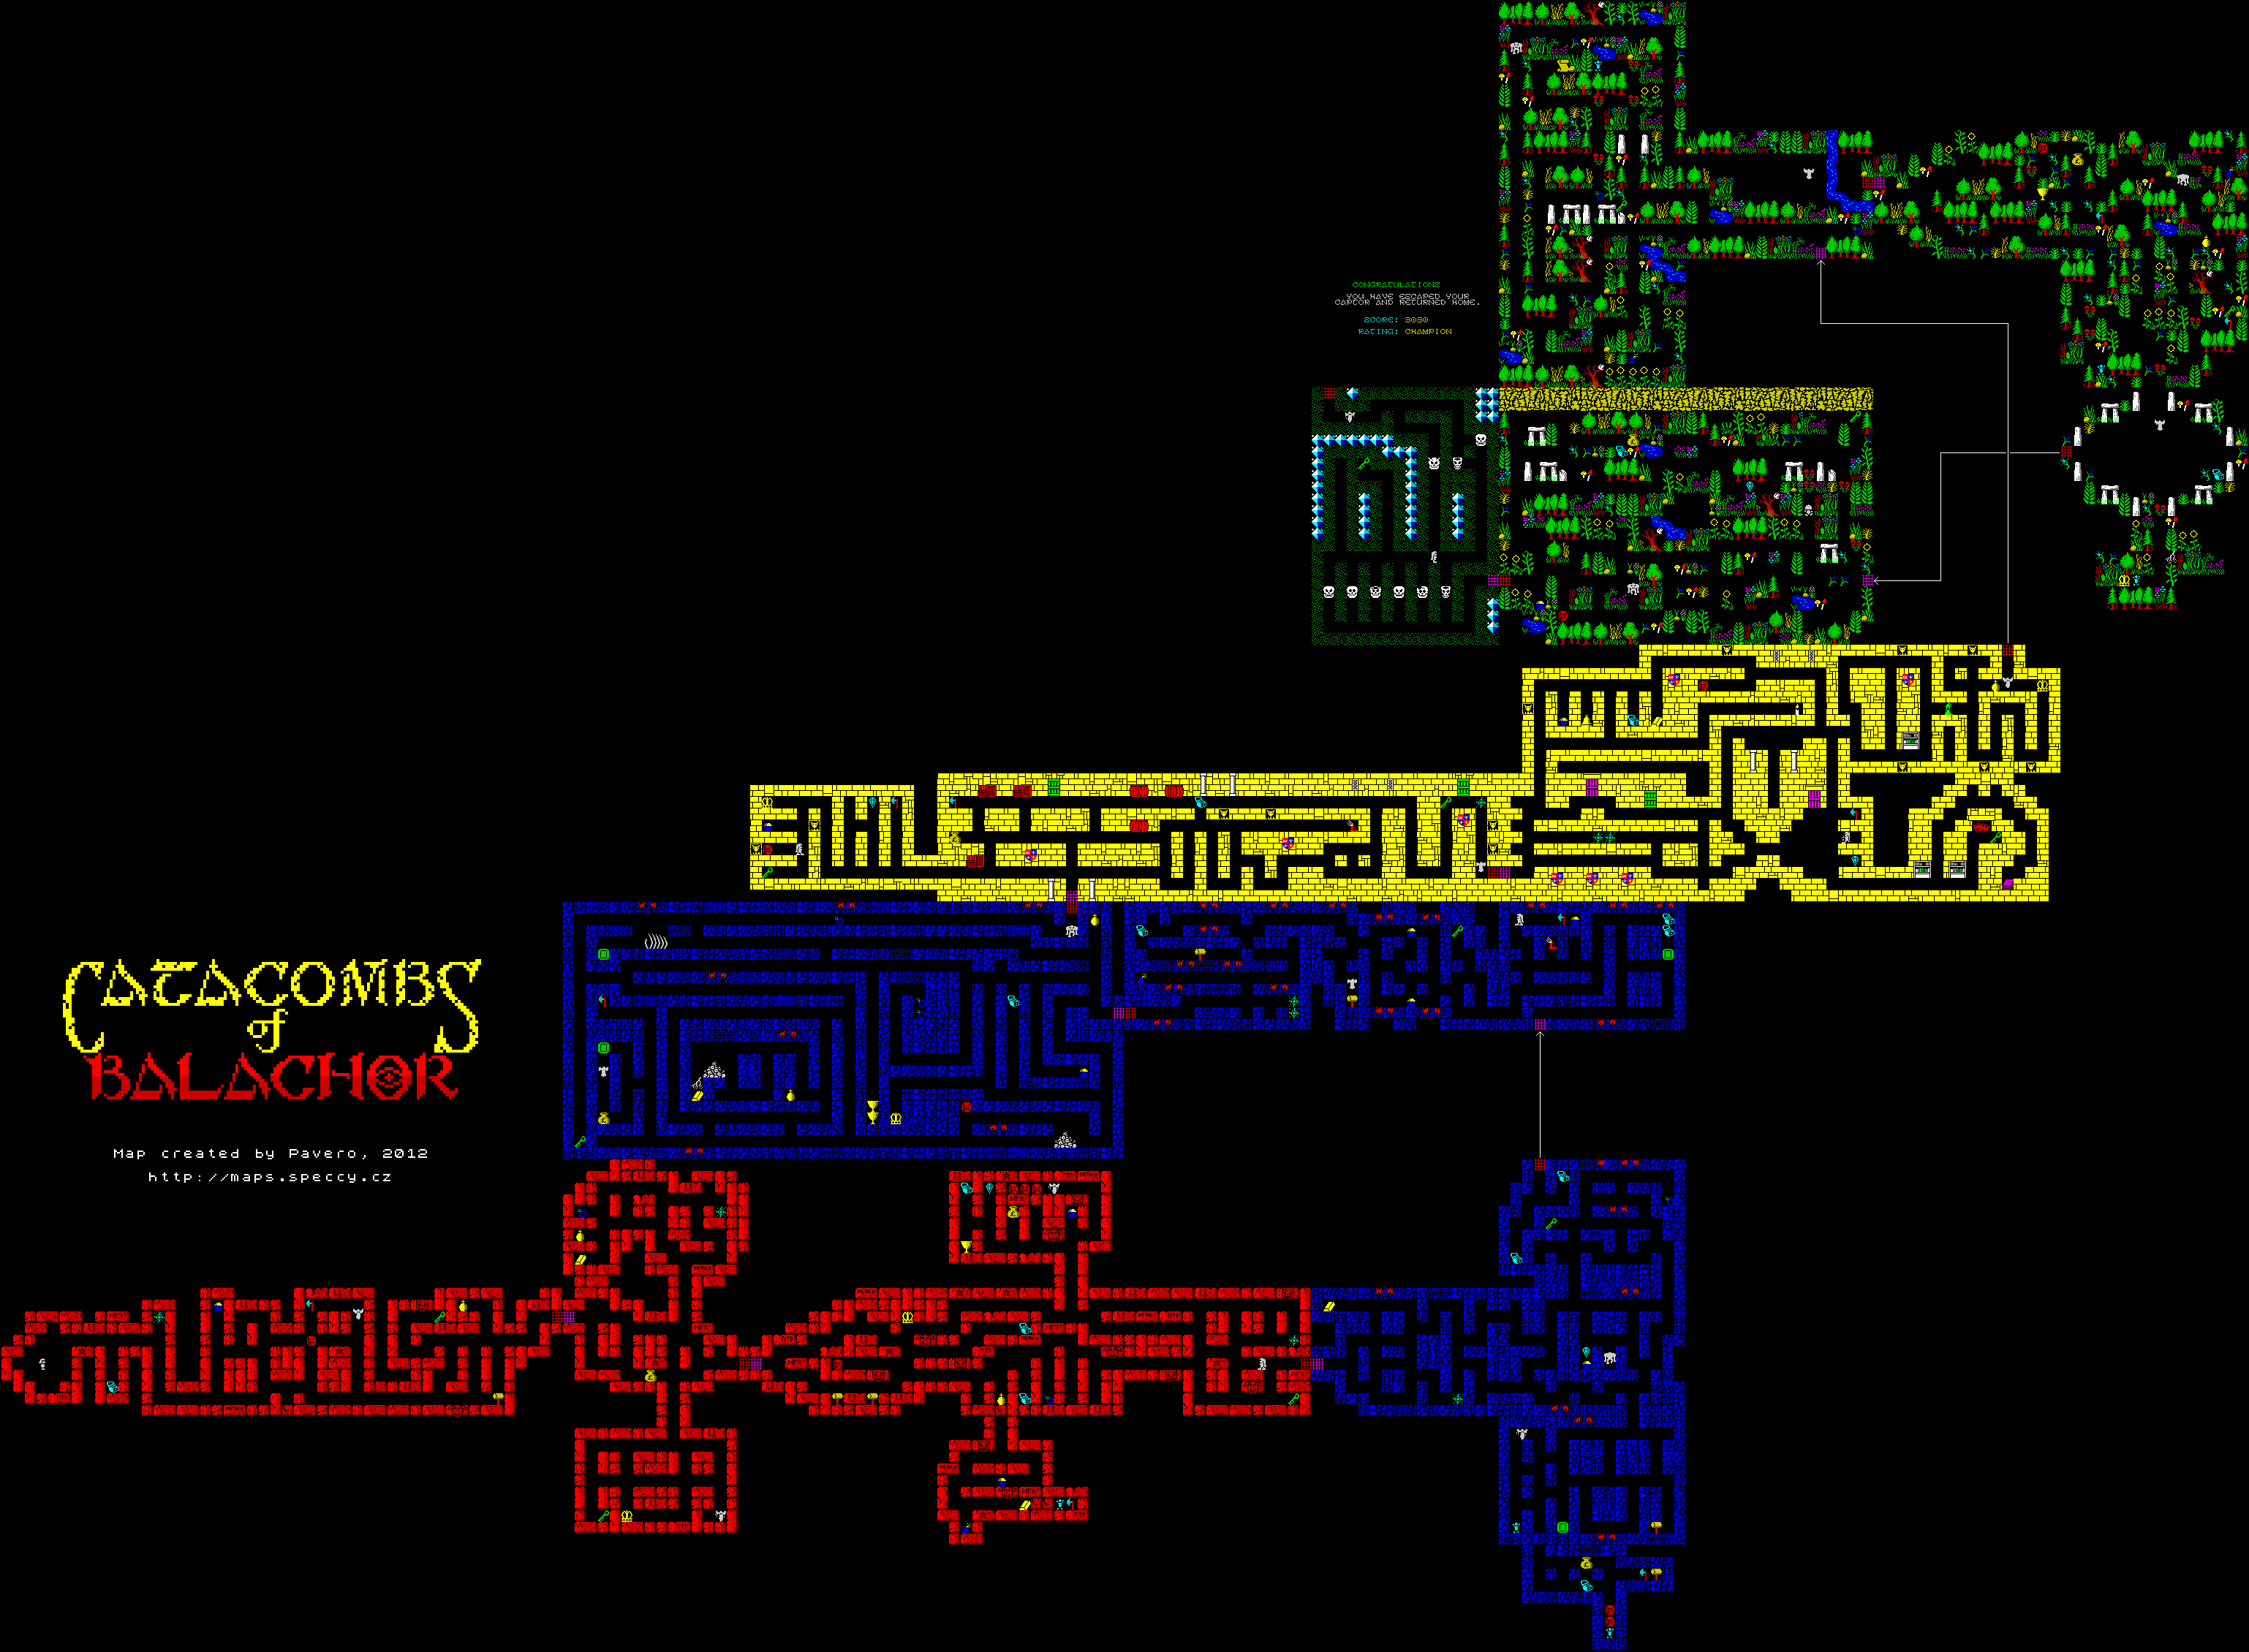 Catacombs of Balachor - The Map